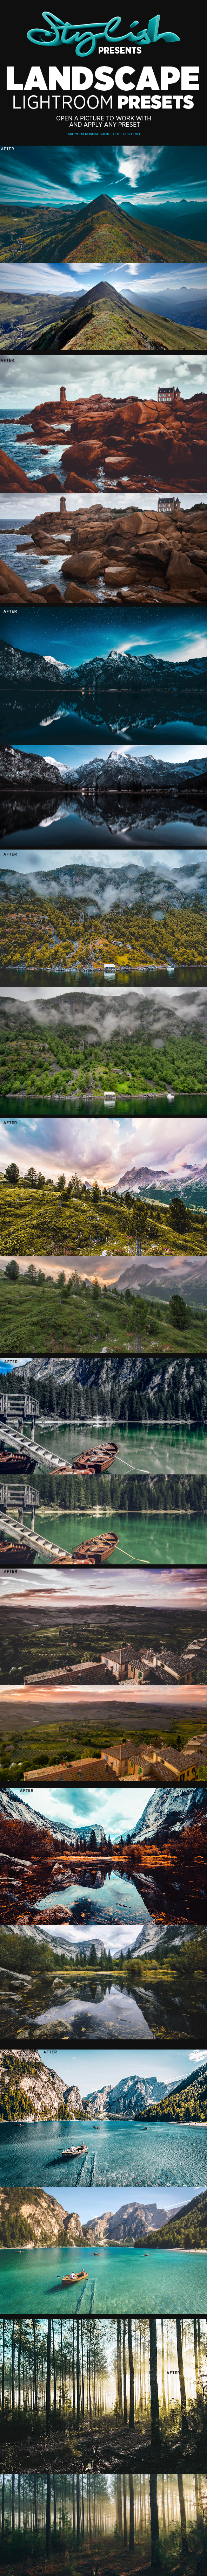 Landscape Lightroom Presets - Lightroom Presets Add-ons